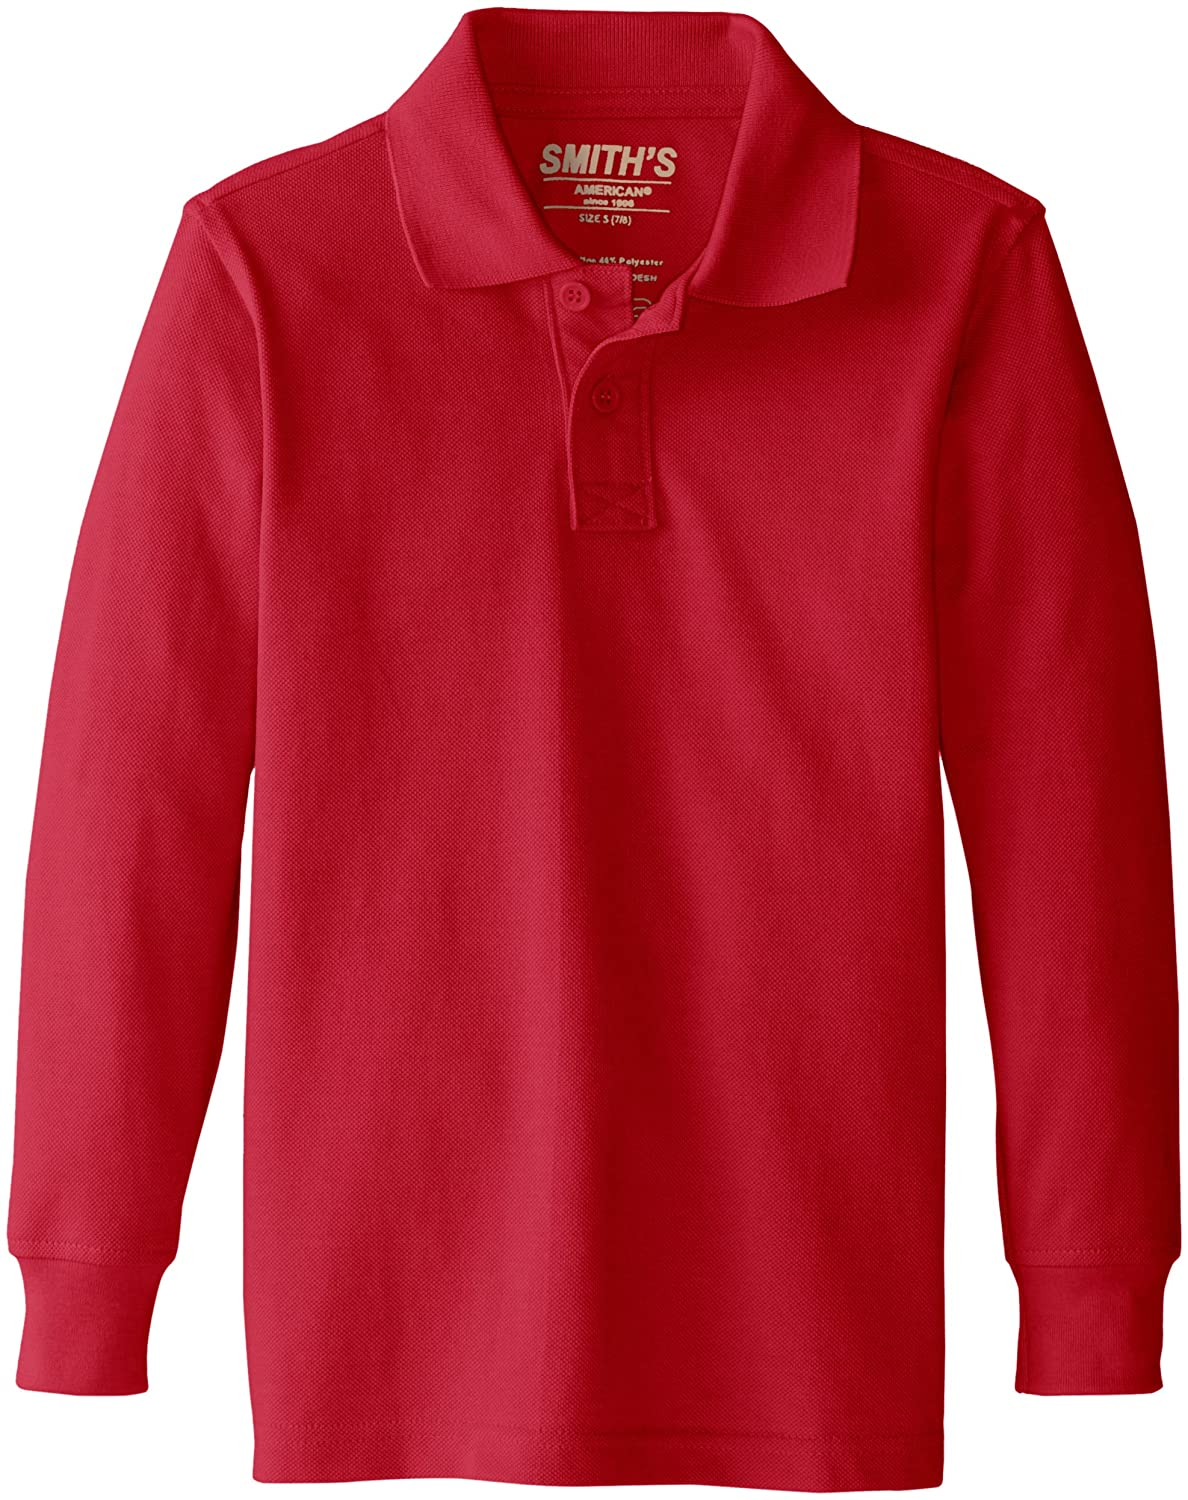 Smith's American Boys' Long Sleeve Polo Red XX-Small Smith's American Boys 2-7 43215-118891